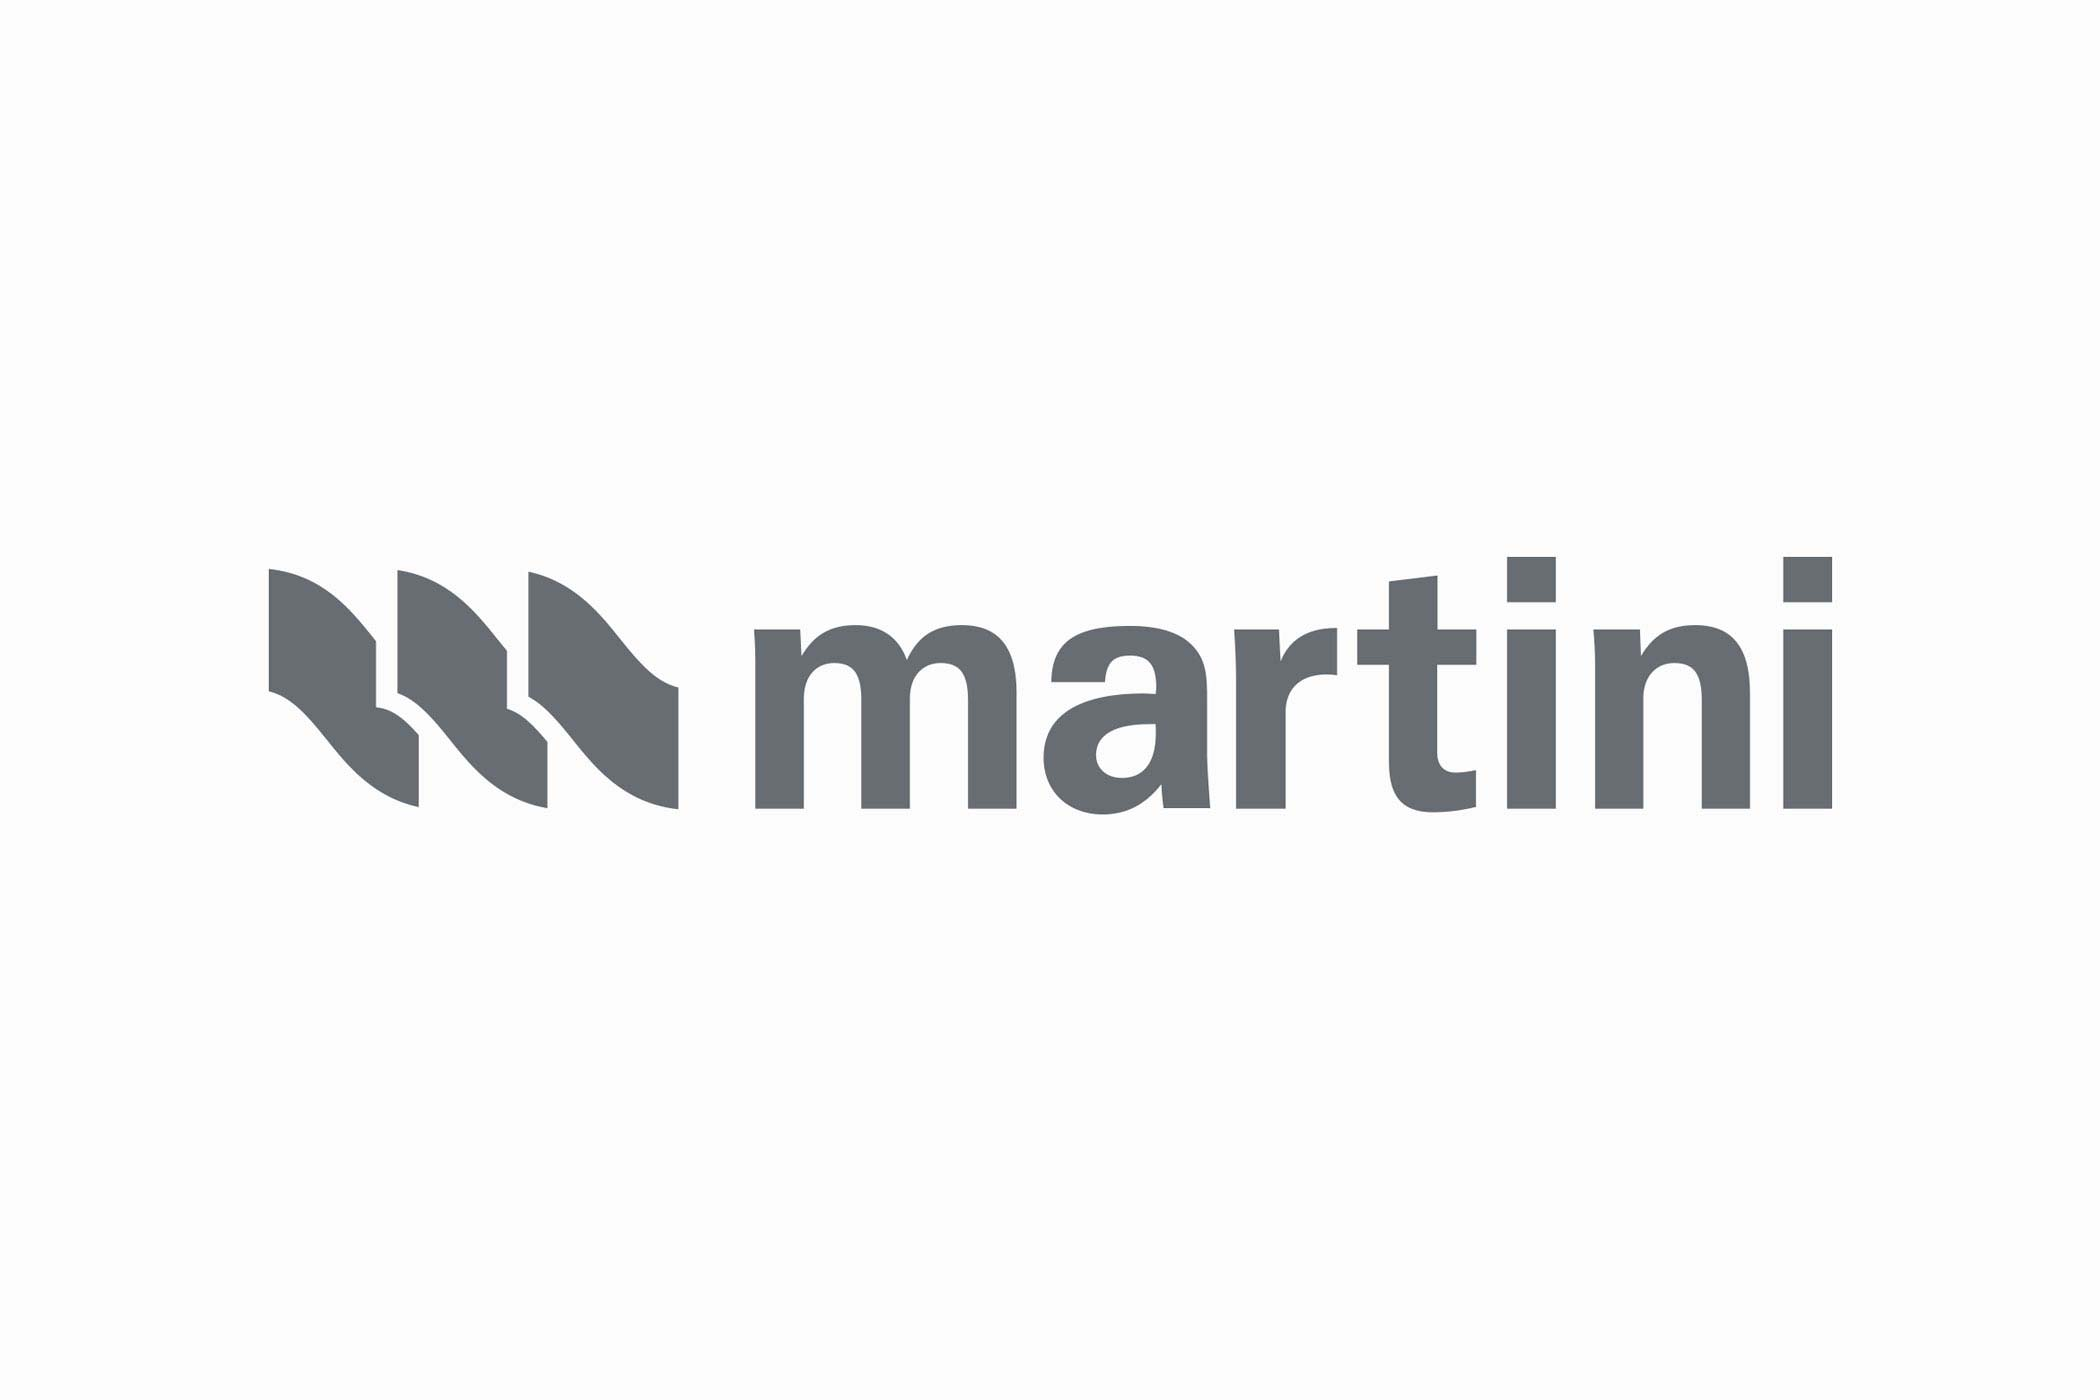 CSR Martini Old Logo, Rebrand by Your One and Only